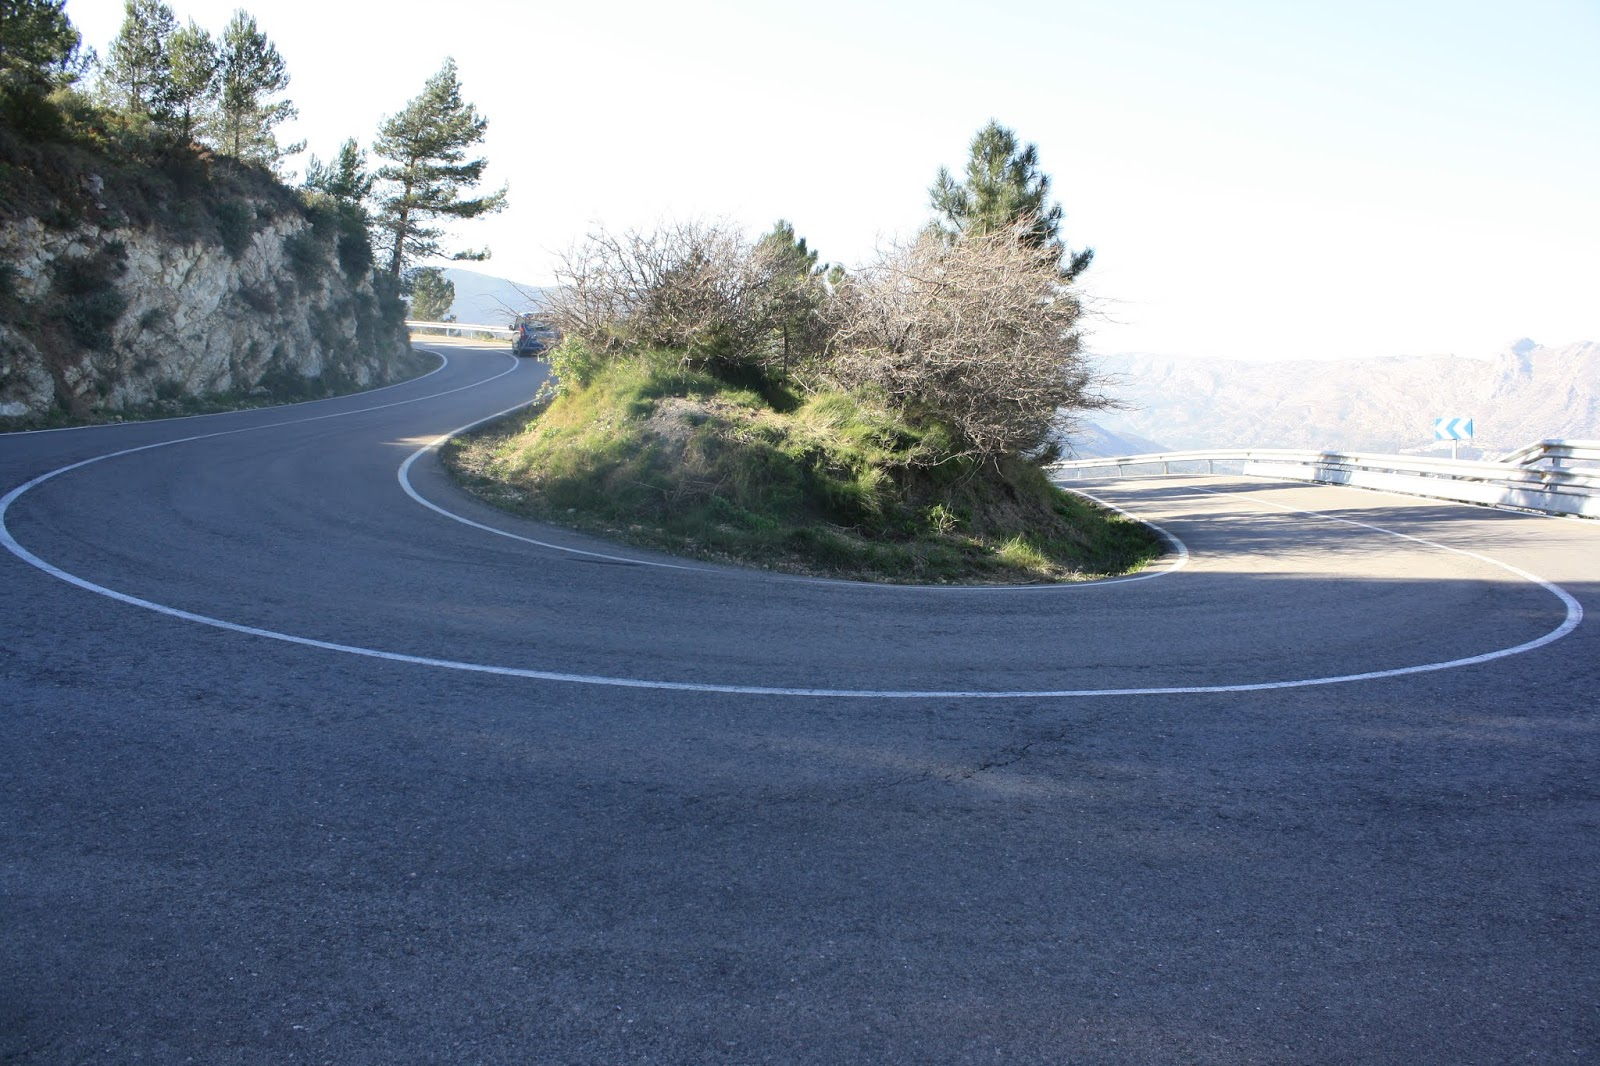 Last switchback on northern climb of Coll de Rates